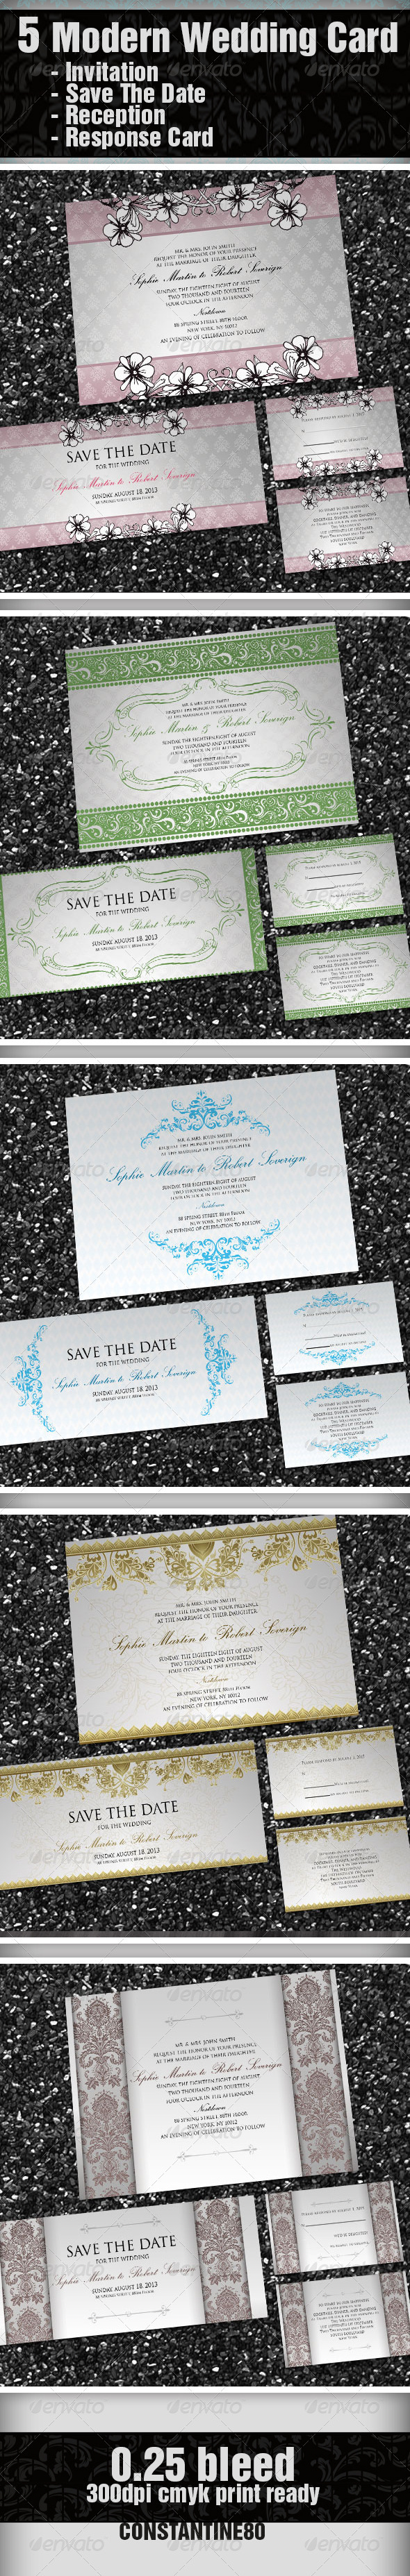 5 Items Modern Wedding Card - Weddings Cards & Invites